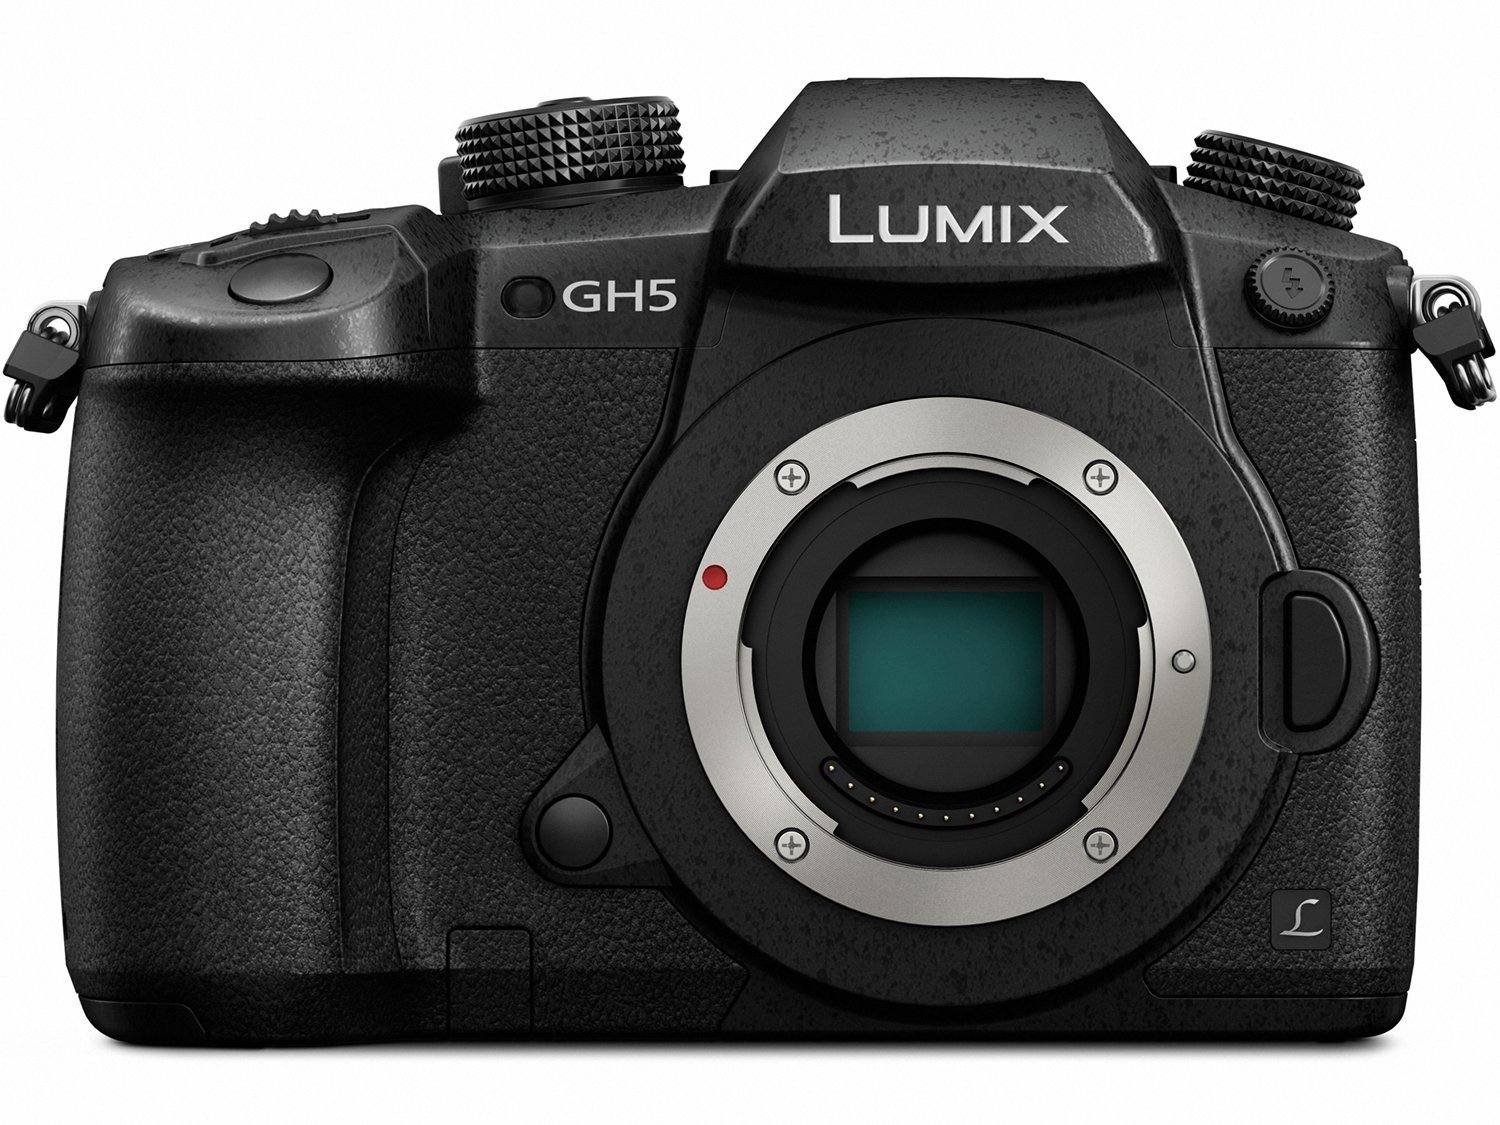 Lumix GH 5 - Mirrorless Camera for Traveling